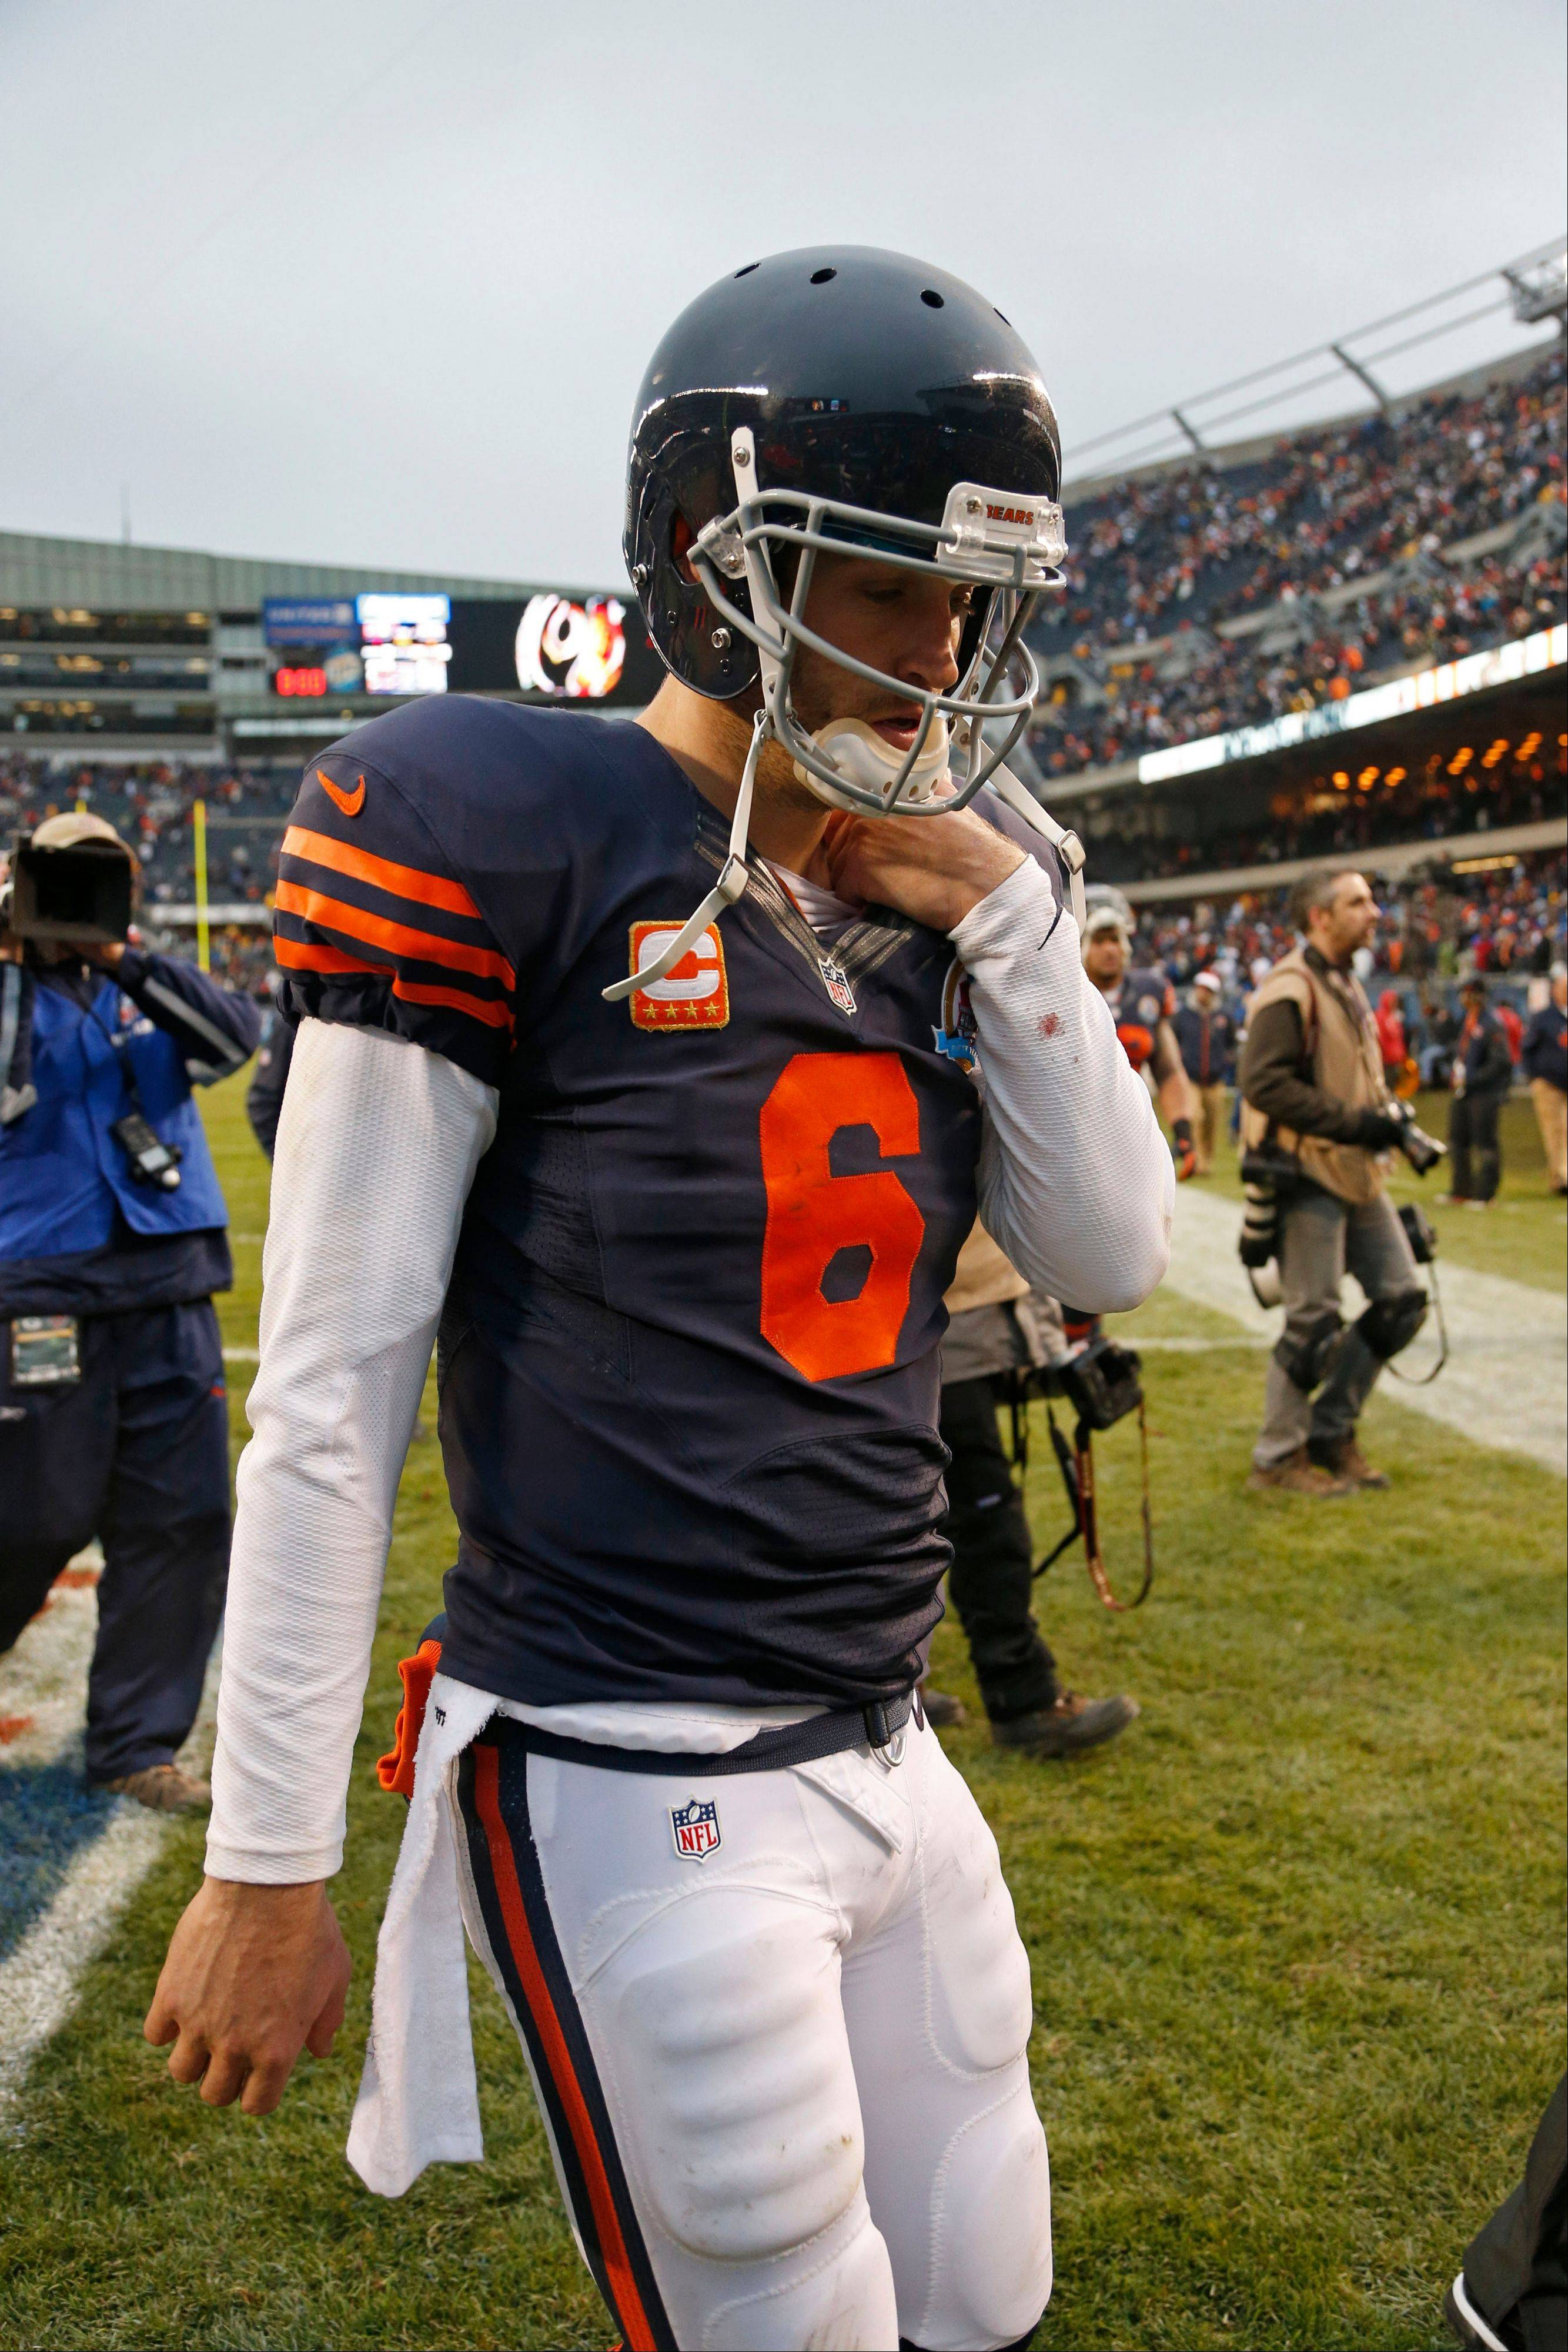 Quarterback Jay Cutler and the offense is just not getting the job done for the Bears